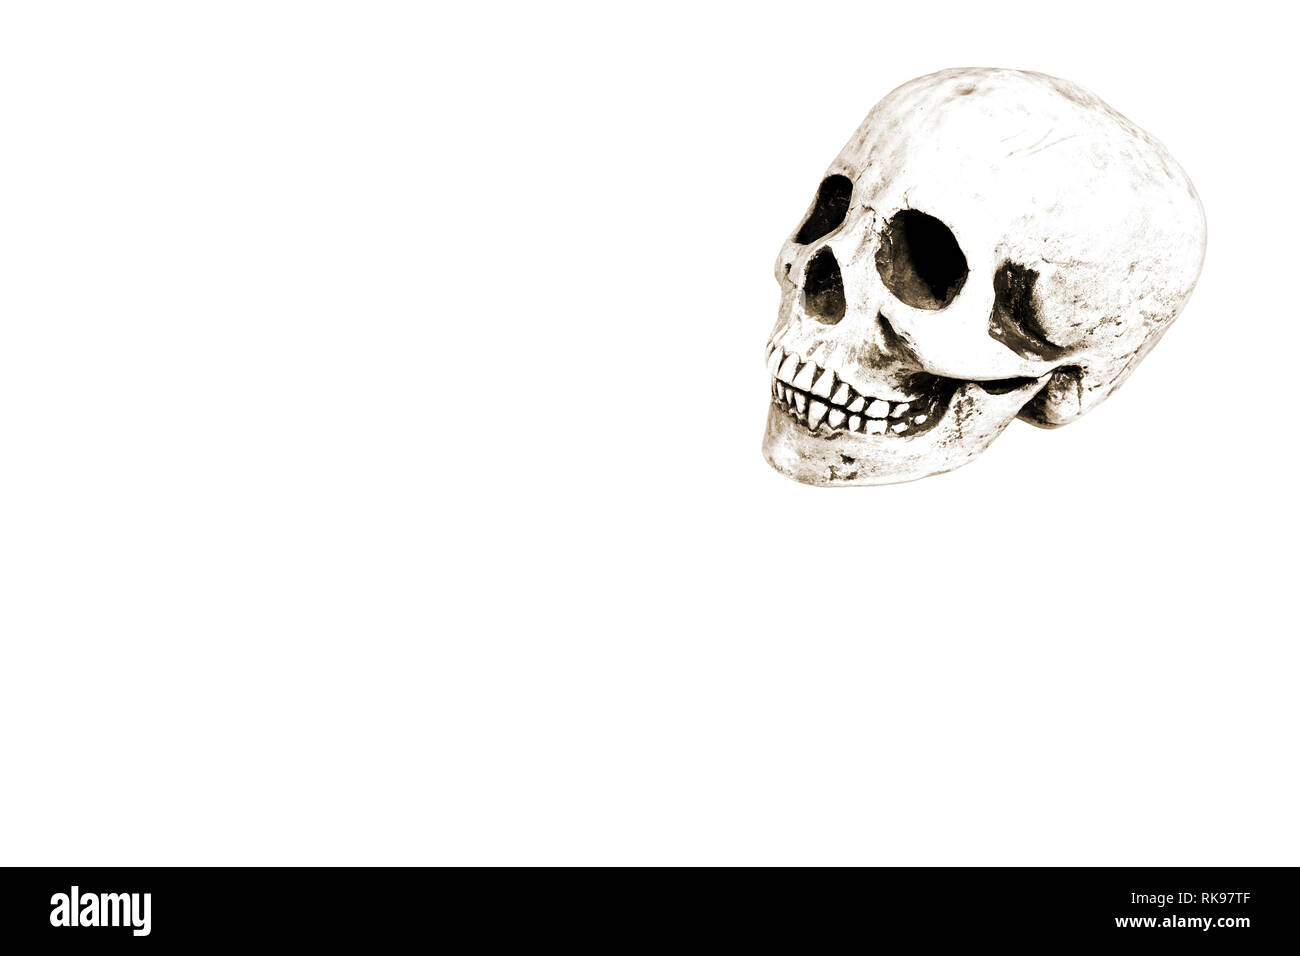 Interesting illustration of a skull on white A4 paper with plenty of space for text or introduction of other elements. Good image for Halloween or Mar - Stock Image